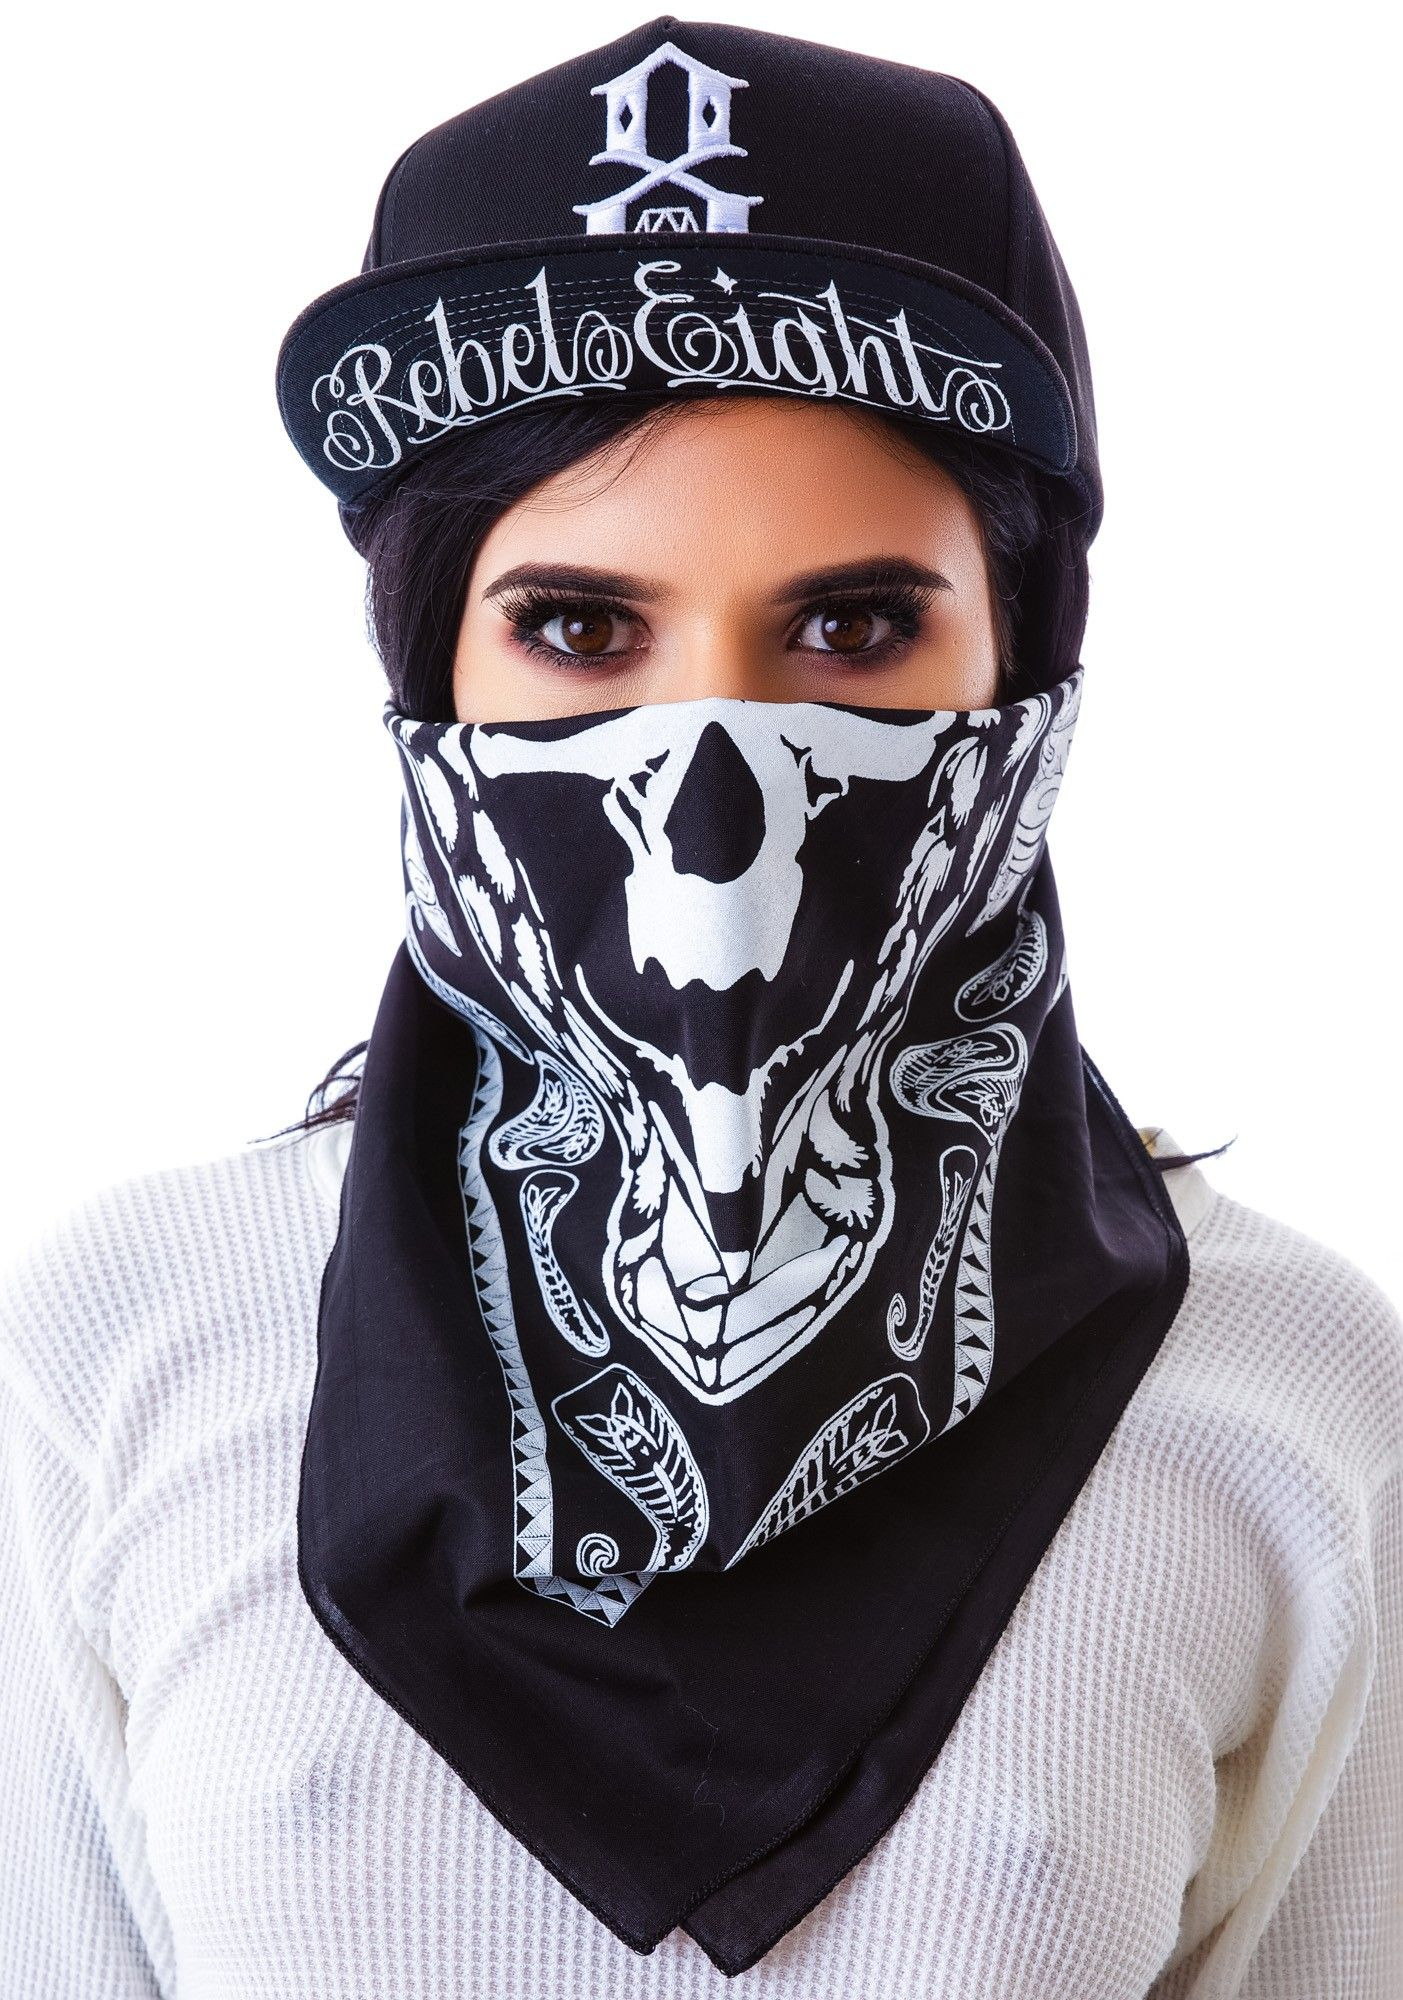 Grinning Skull Bandana | Bandanas, Boy london and Wildfox